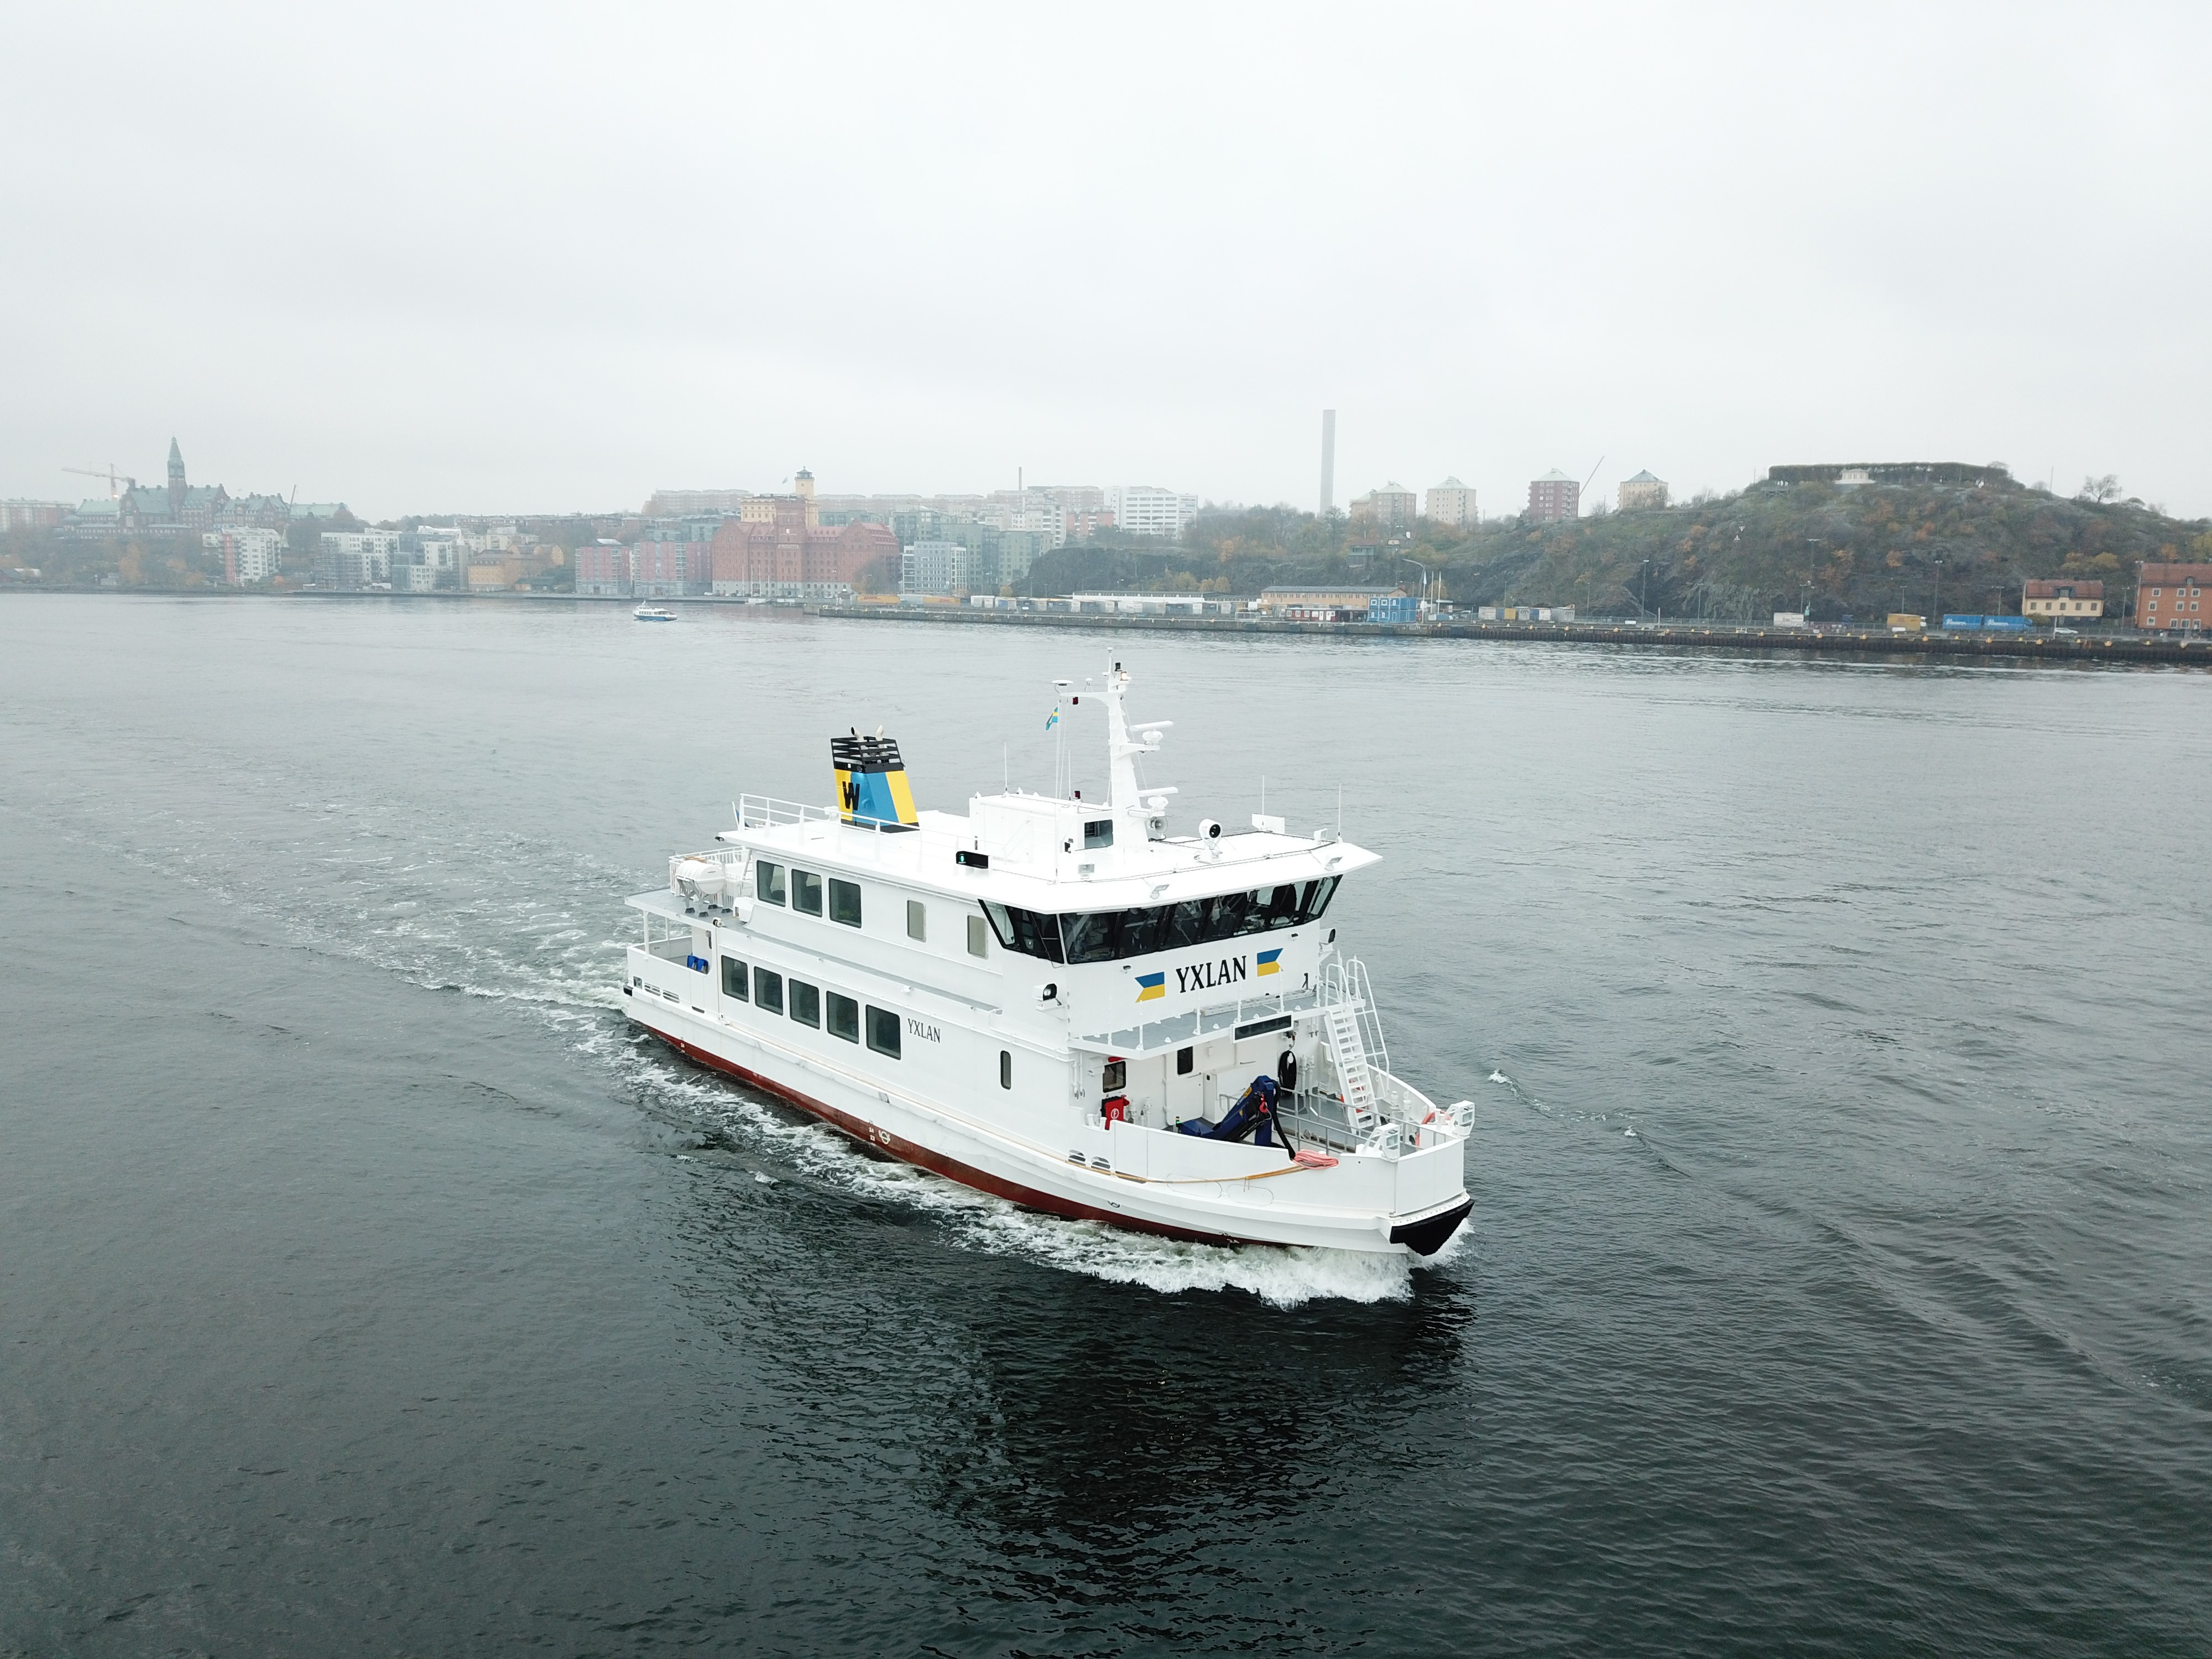 Waxholmsbolaget launches its first hybrid ship